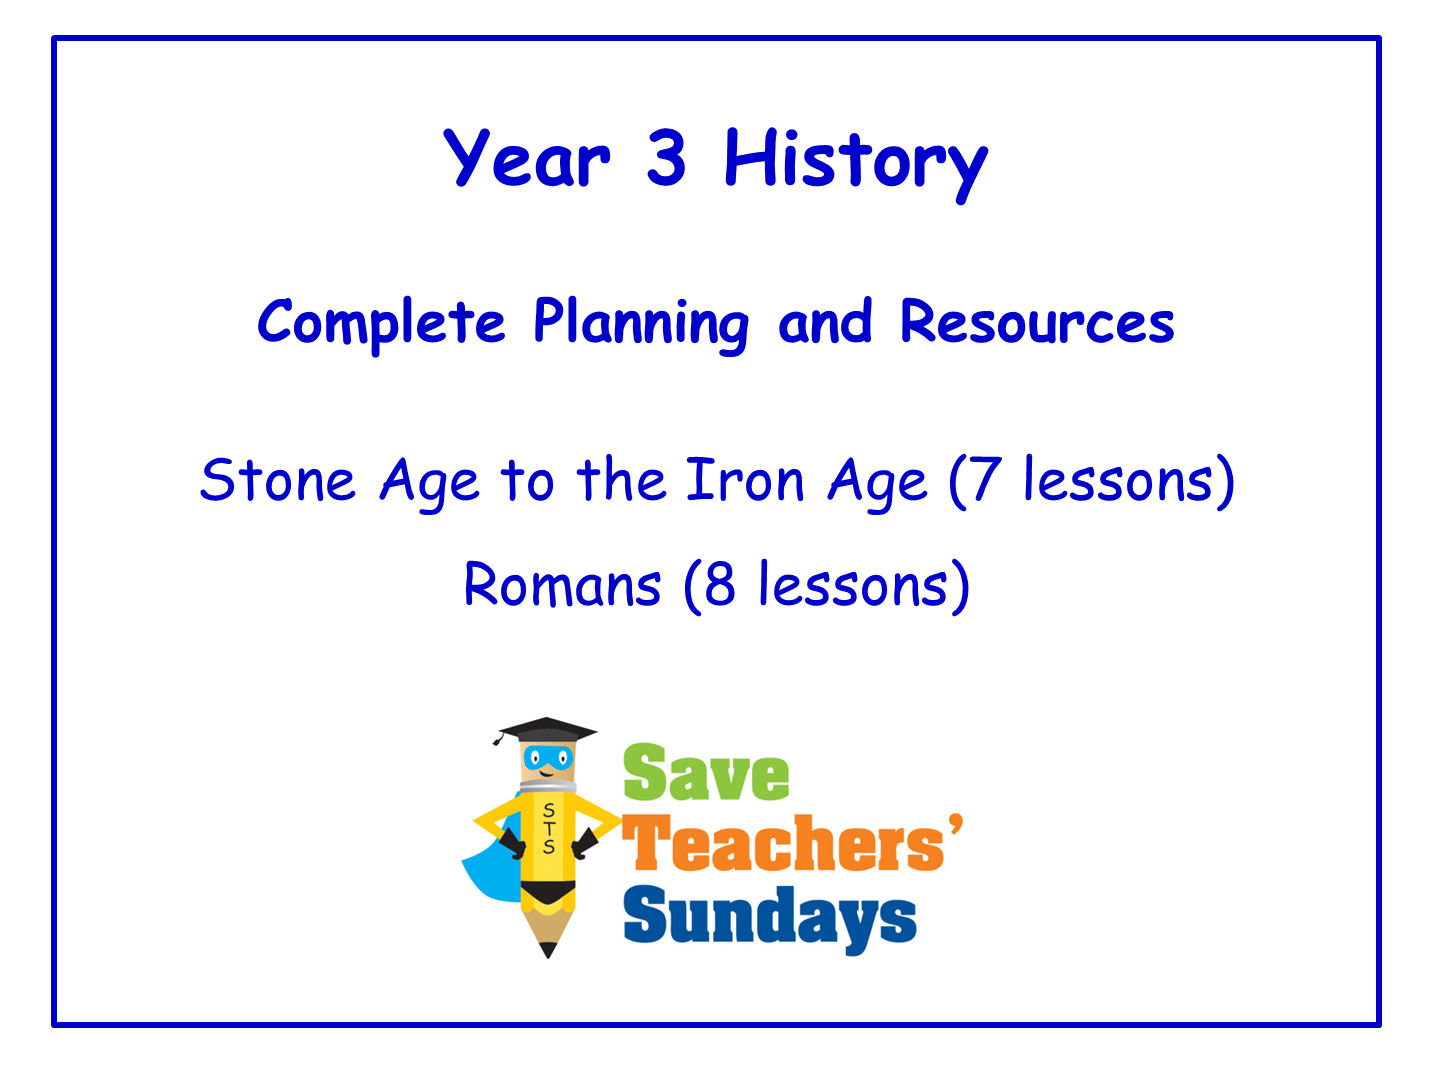 Year 3 History Planning and Resources